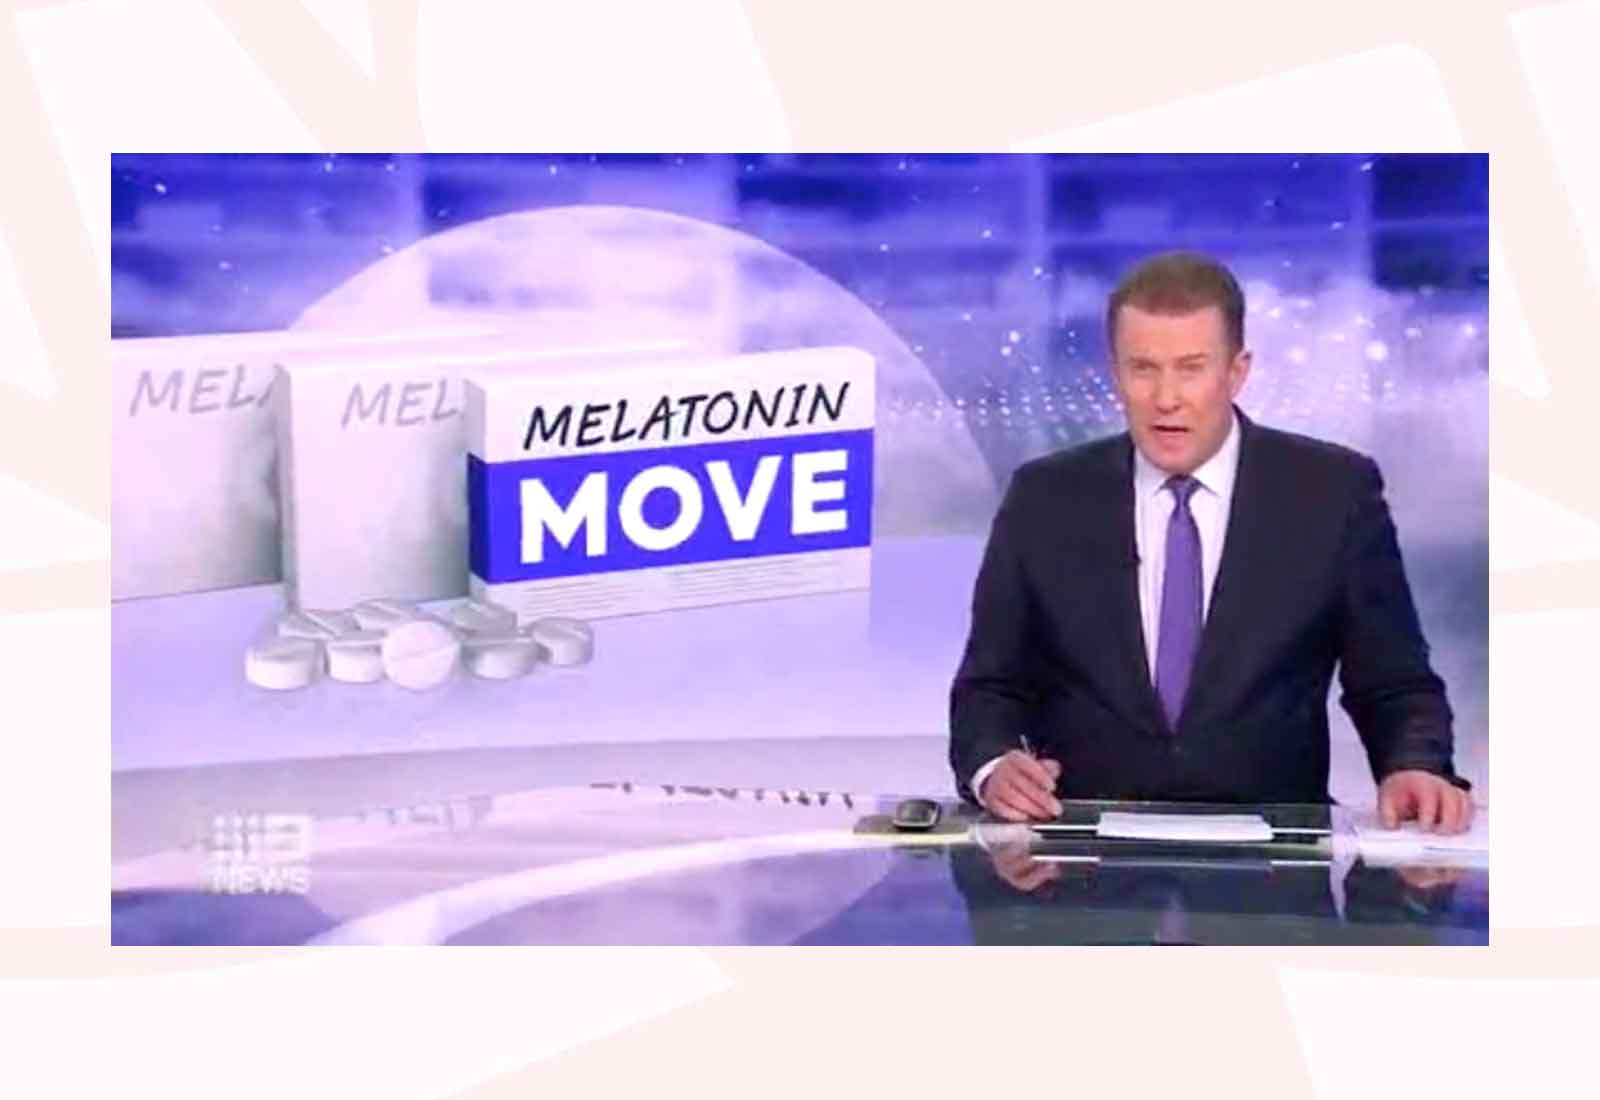 9 News: Common sleeping aid melatonin could soon be available at chemist without a prescription